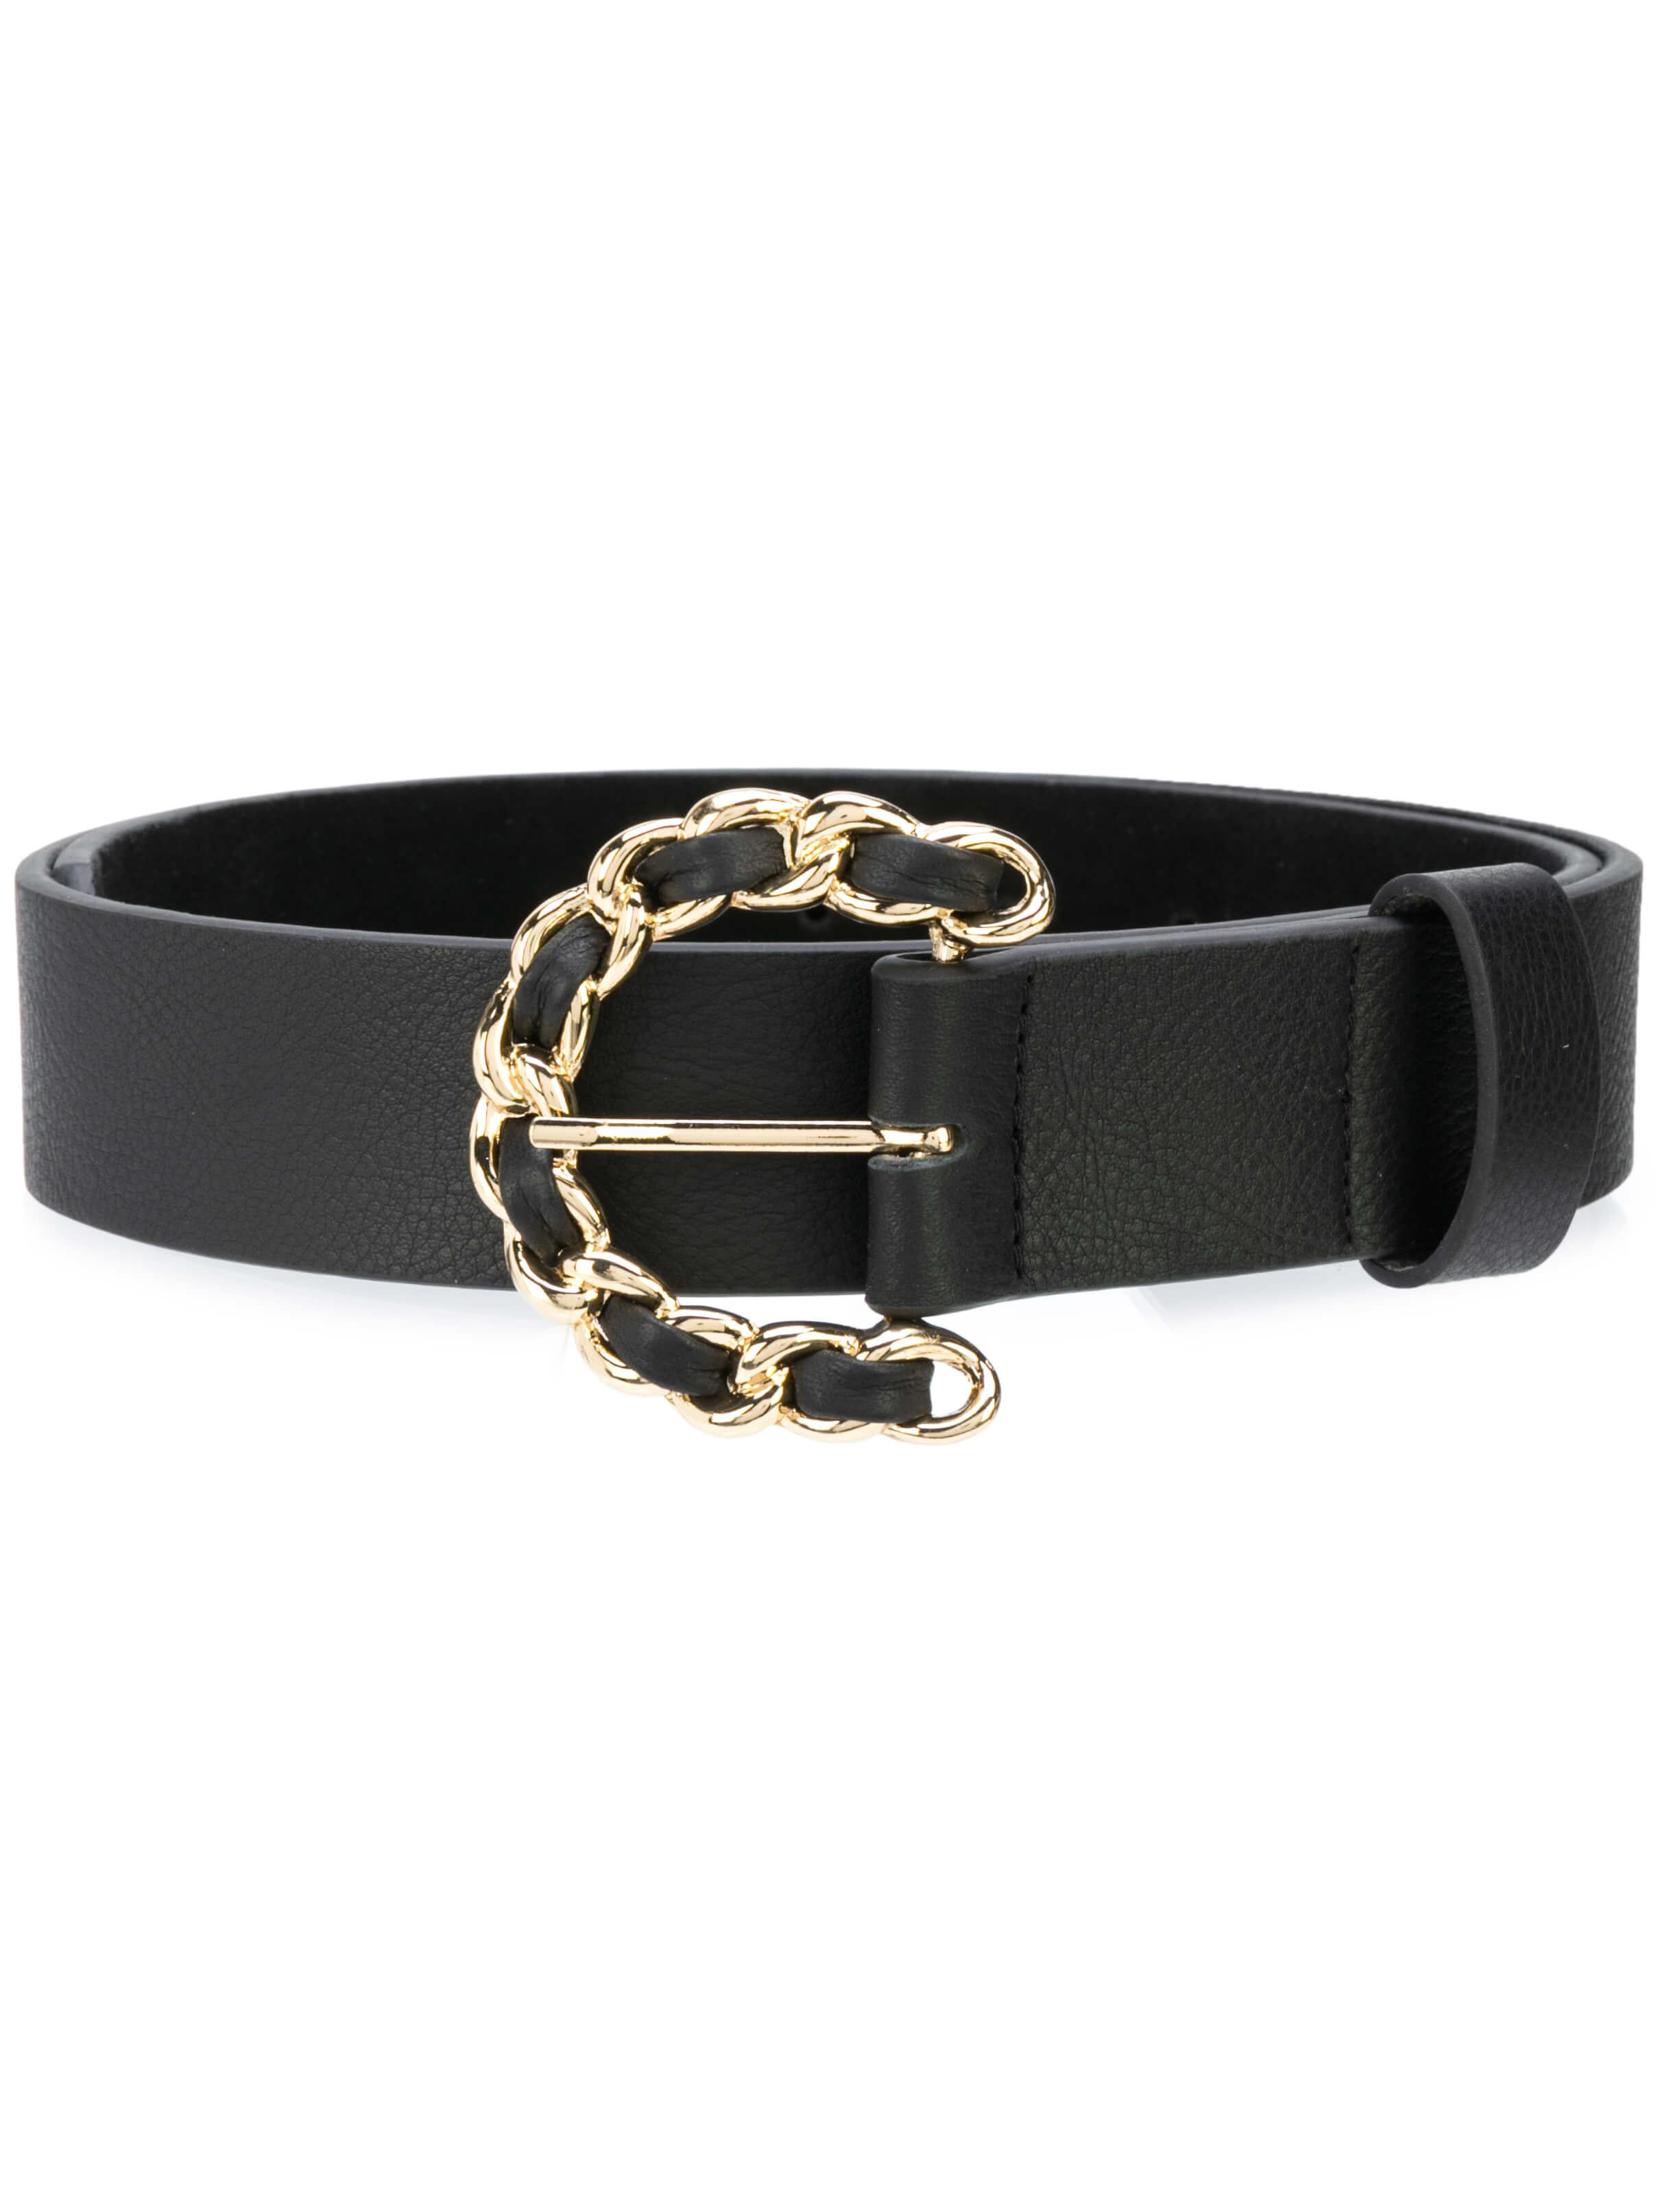 Anabella Chain Buckle Item # BW563-000LE